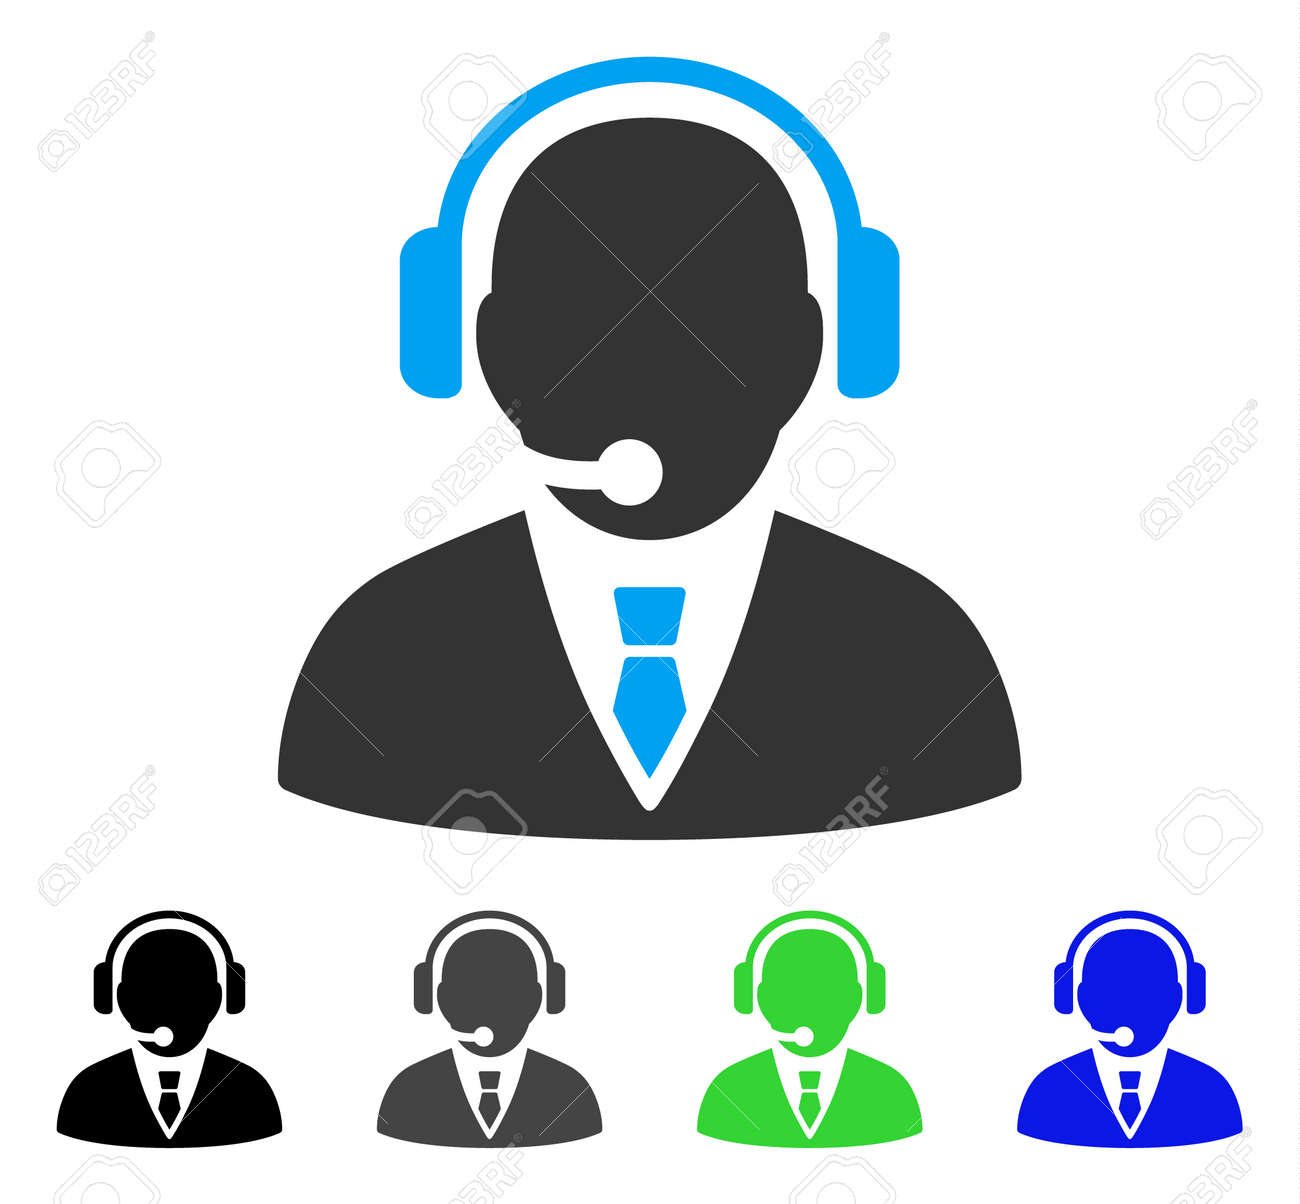 Support Manager flat vector pictograph. Colored support manager gray, black, blue, green icon versions. Flat icon style for graphic design. - 83029872